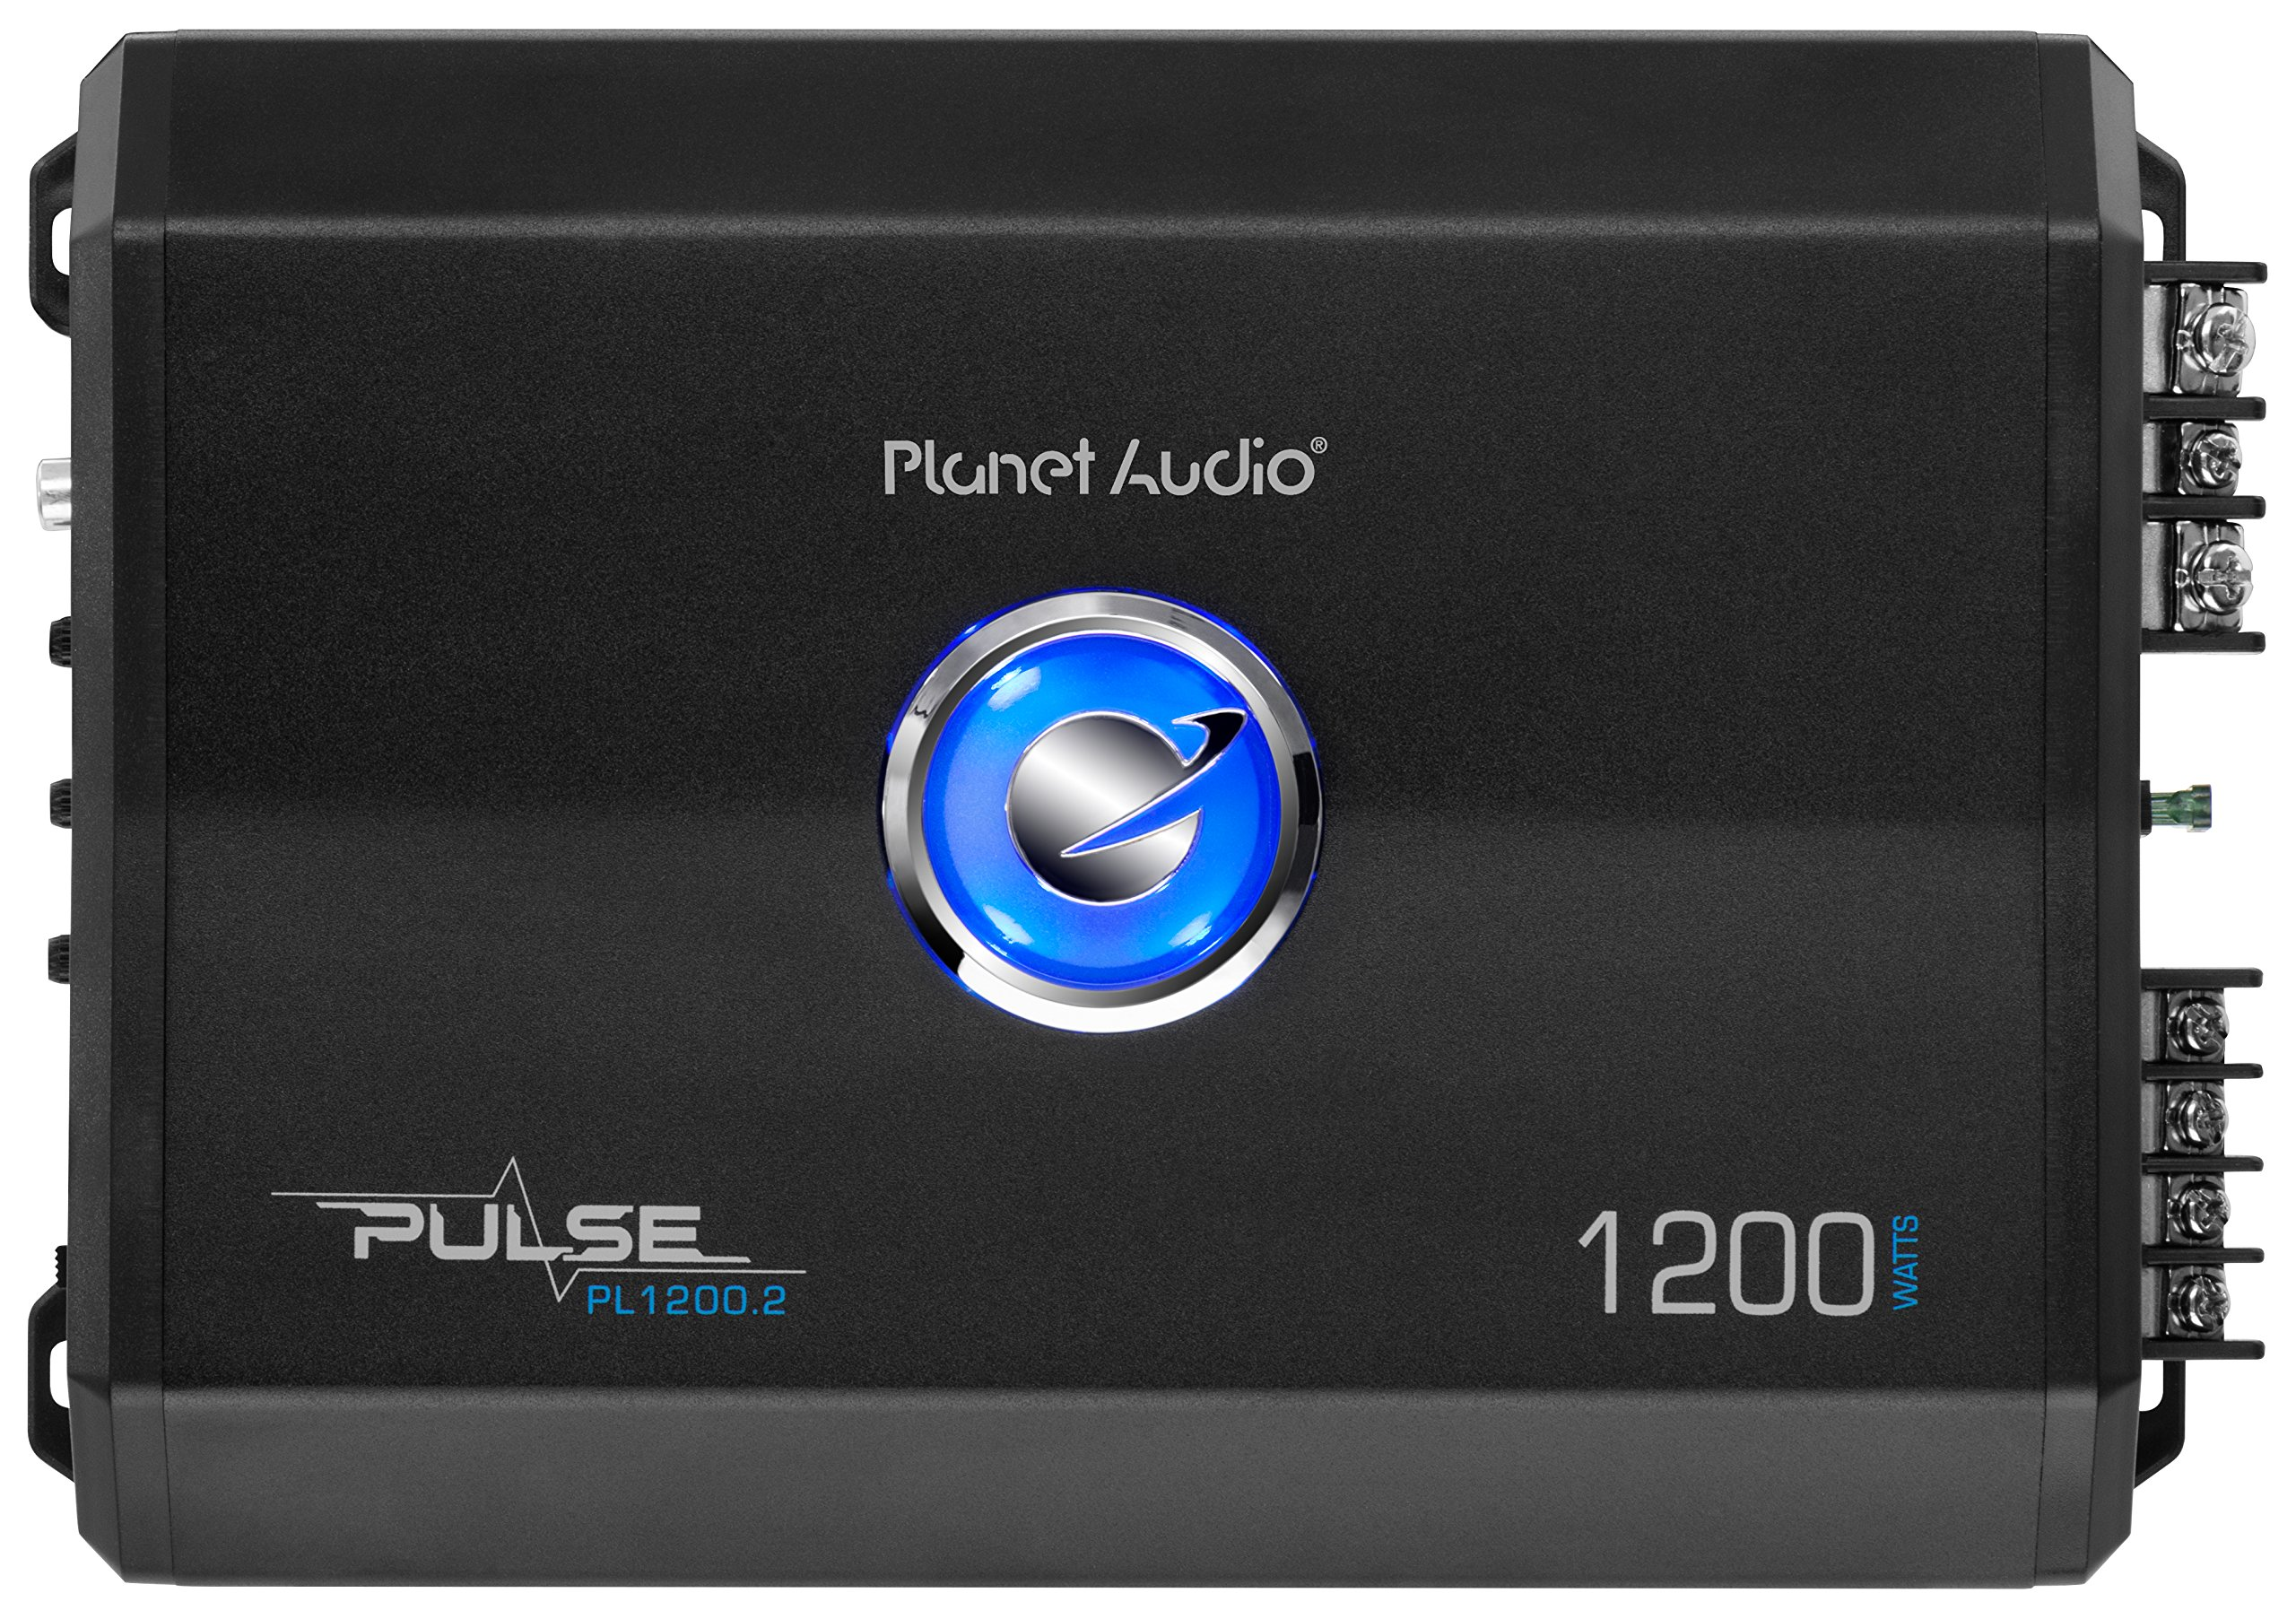 Planet Audio PL1200.2 Pulse 1200 Watt, 2 Channel, 2 to 8 Ohm Stable Class A/B, Full Range, Bridgeable, MOSFET Car Amplifier with Remote Subwoofer Control